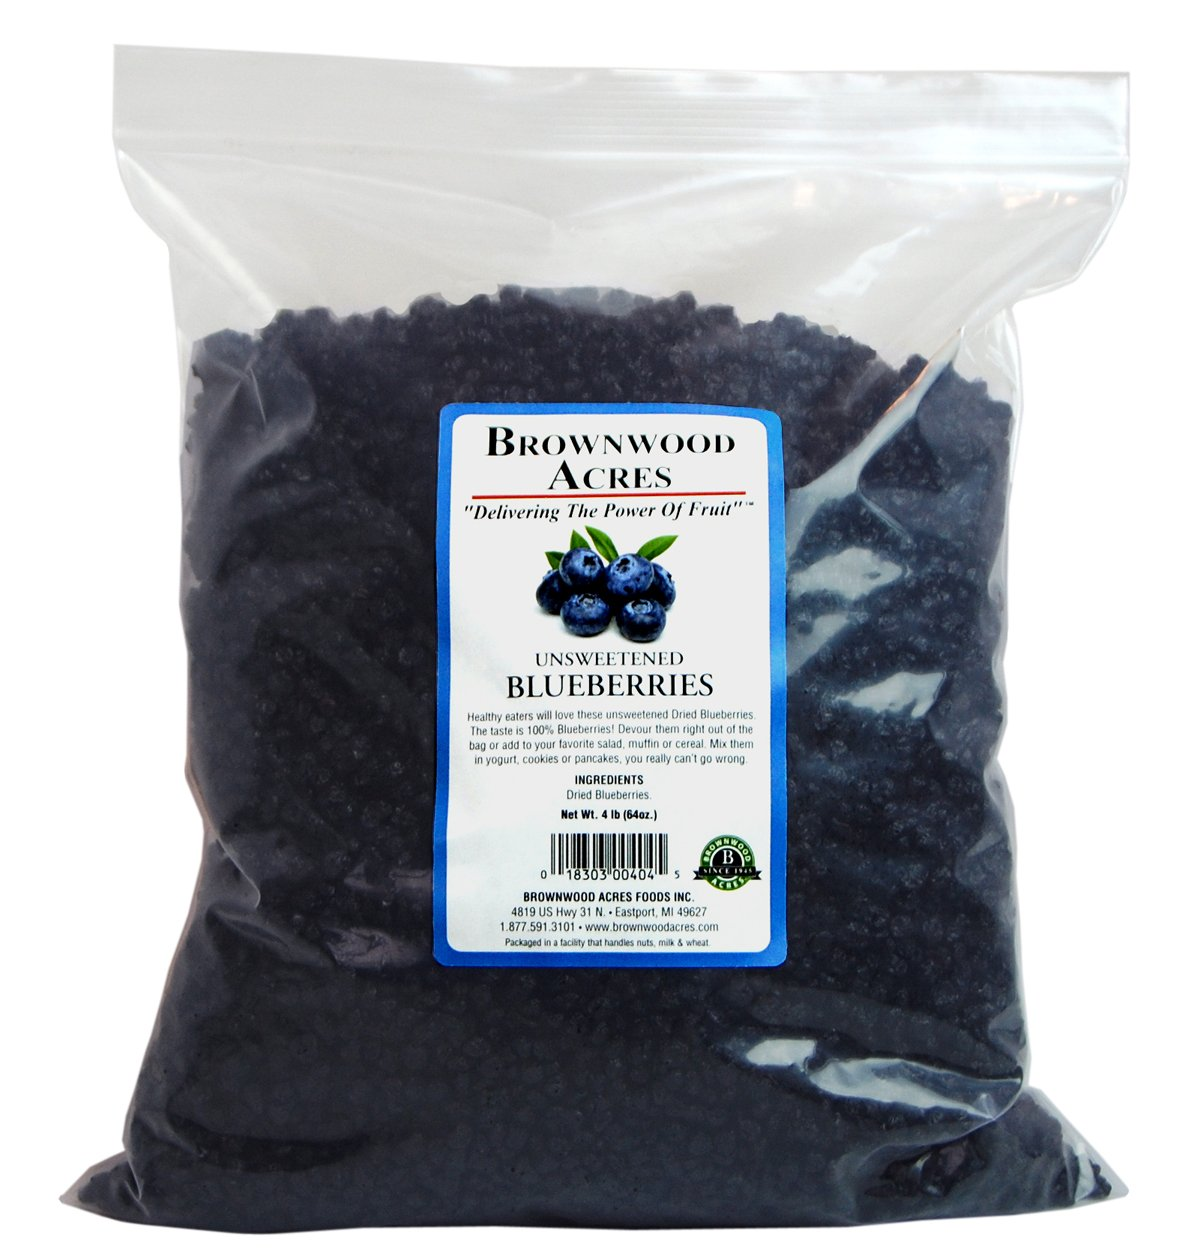 Unsweetened Dried Blueberries by Brownwood Acres - No Added Sugars, Oils or fillers - Just Blueberries! (4 Pound)